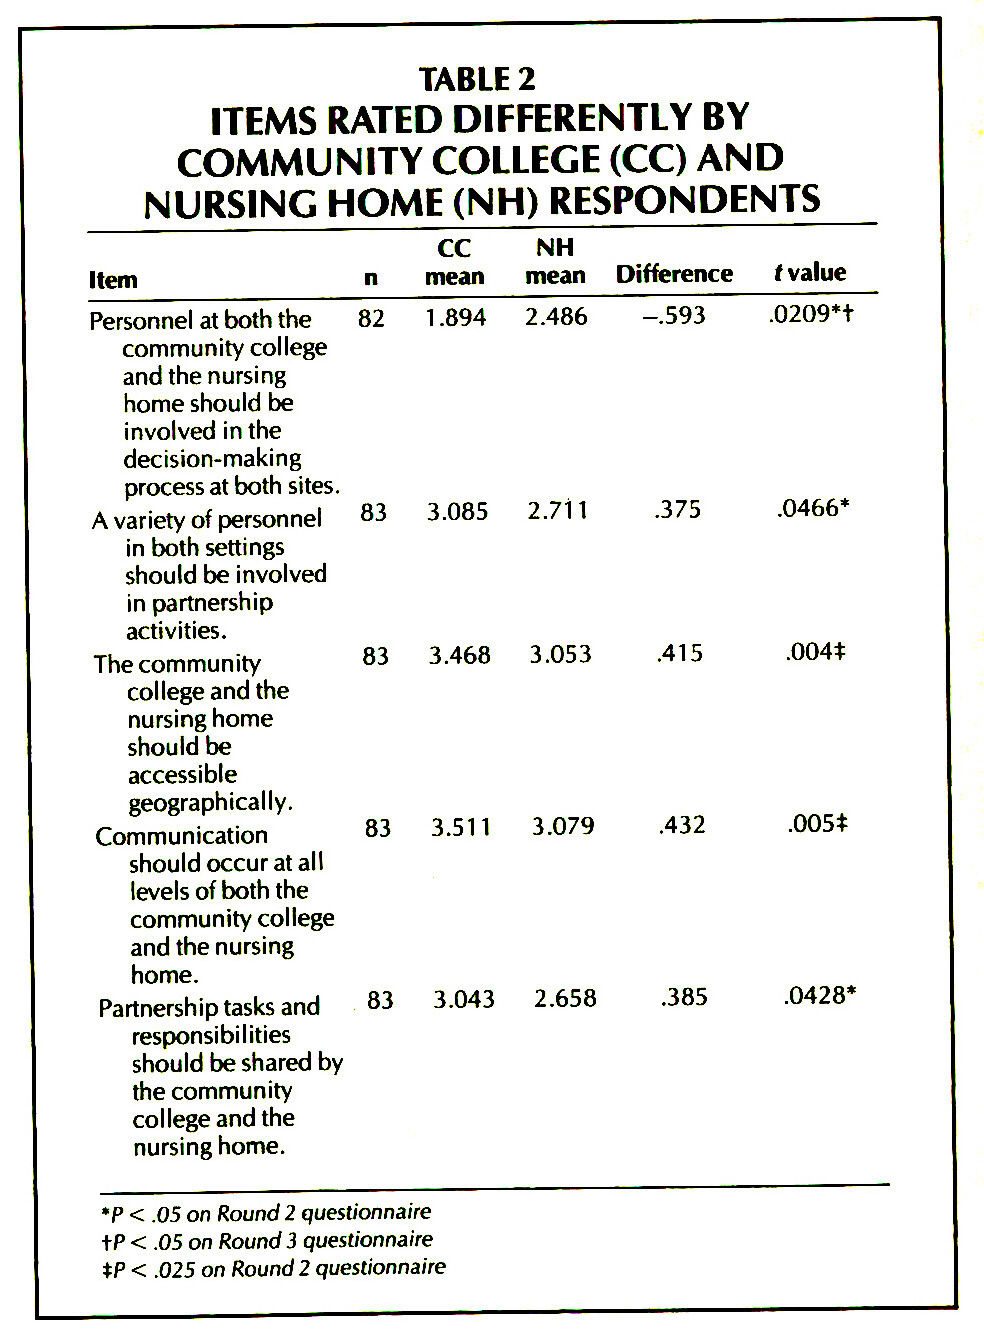 TABLE 2ITEMS RATED DIFFERENTLY BY COMMUNITY COLLEGE (CC) AND NURSING HOME (NH) RESPONDENTS